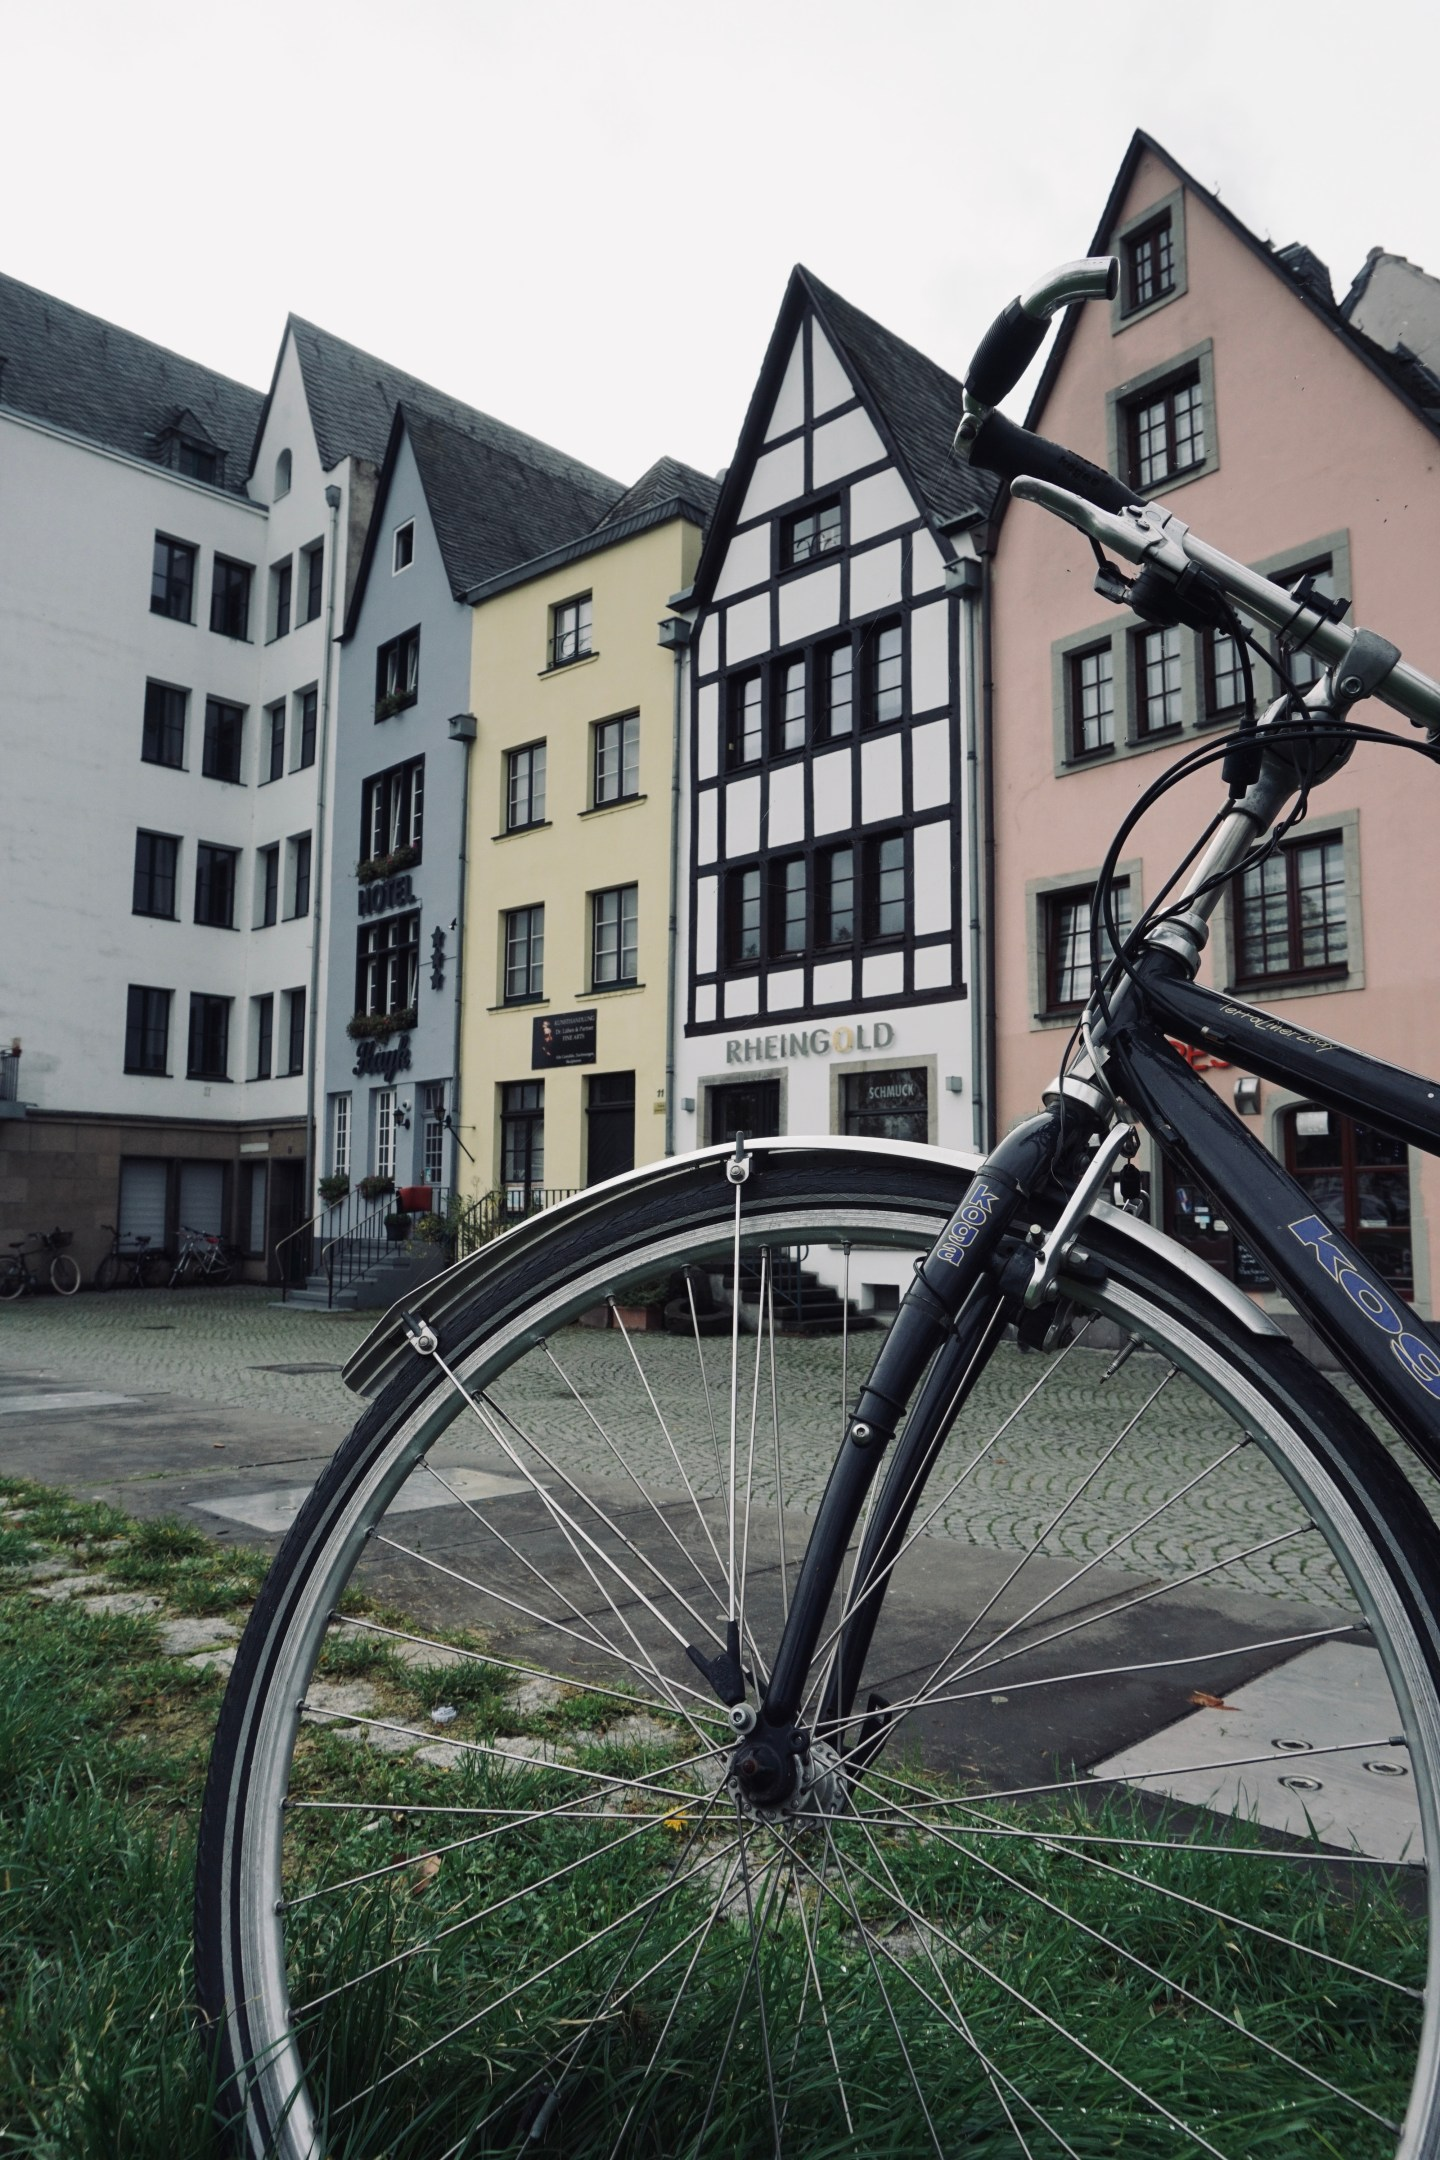 Bike in front of houses in the Old Town - Cologne